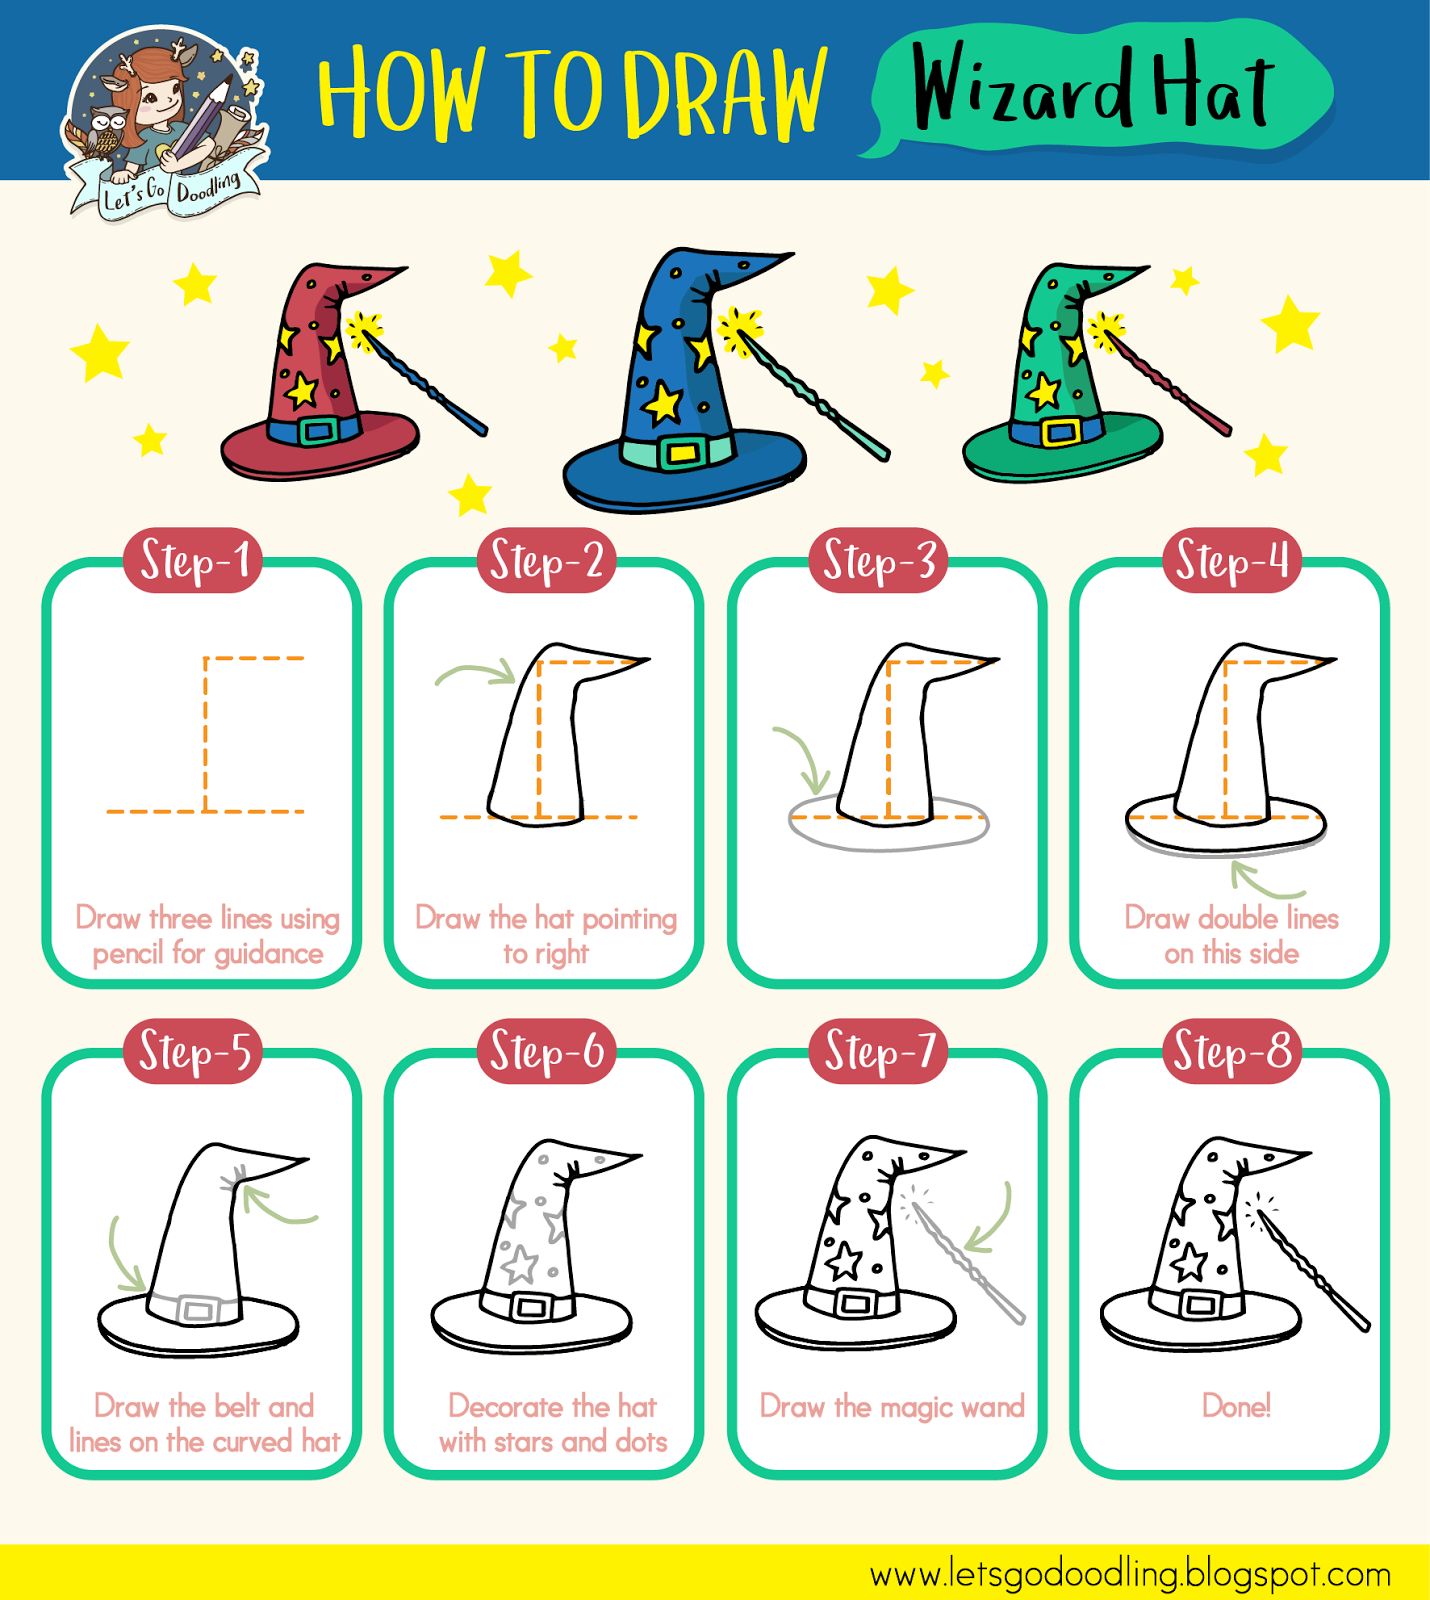 Learn How To Draw A Wizard Hat With These Super Easy Steps Great For Kids And Beginners You Will Need A Paper Step By Step Drawing Drawing Tutorial Drawings